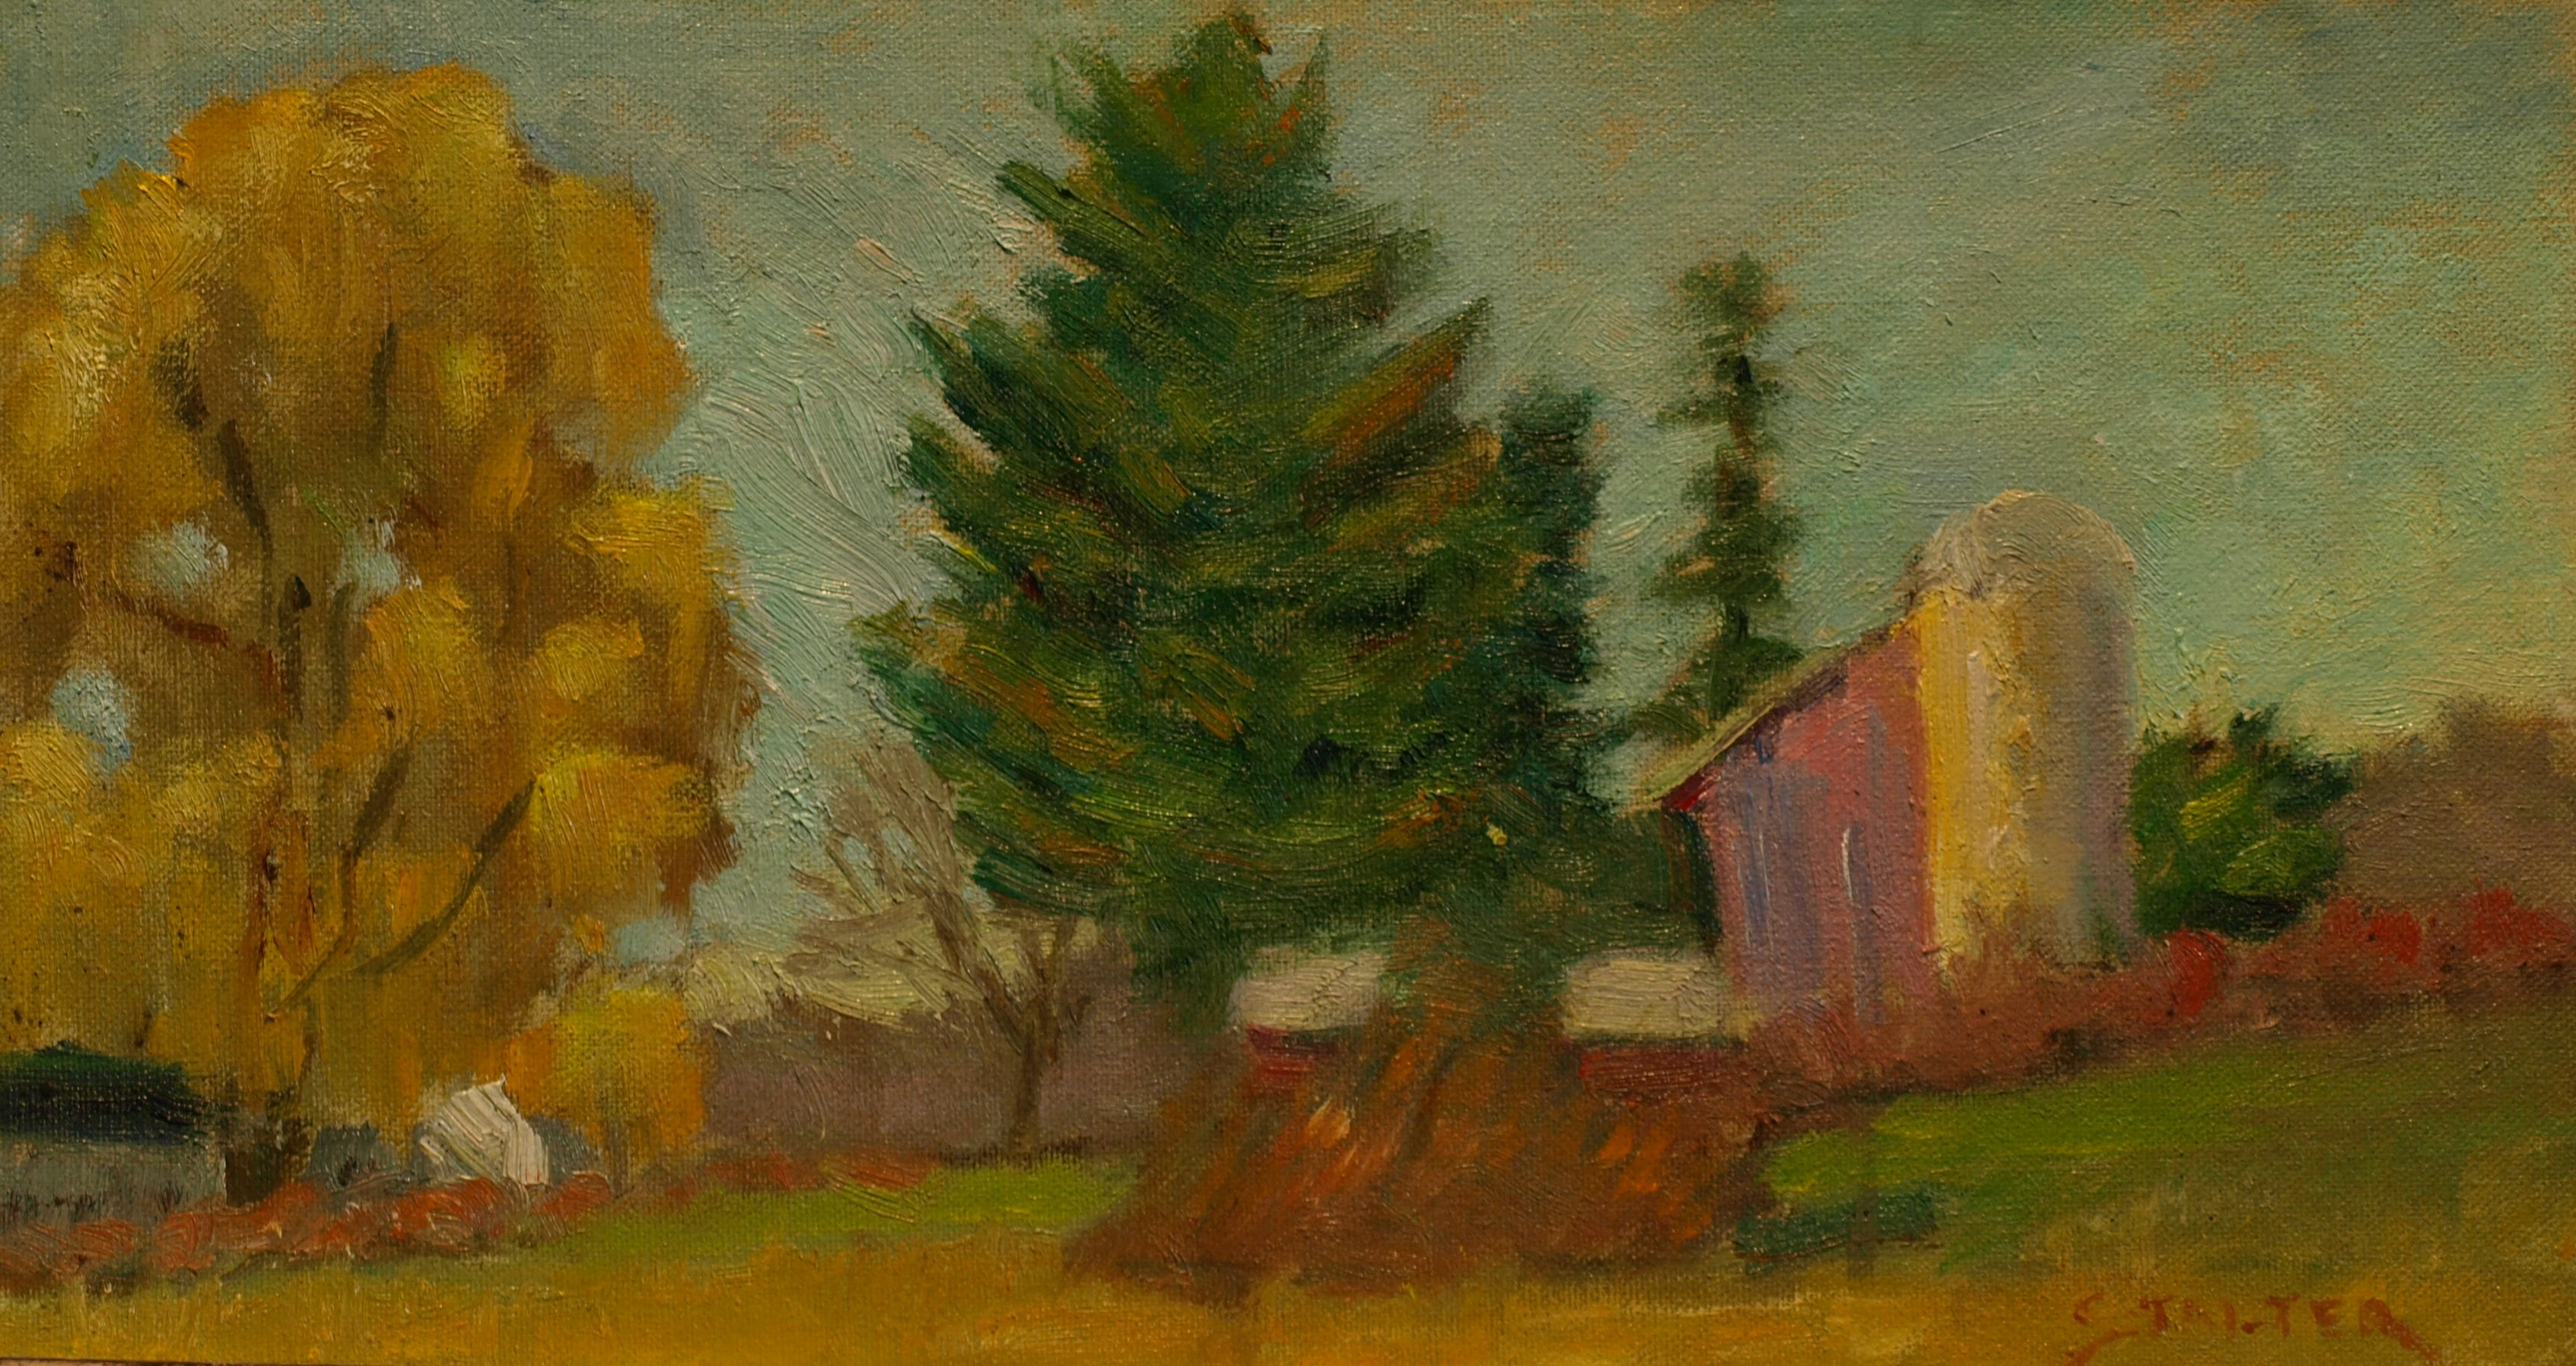 Little Field Road Farm, Oil on Canvas on Panel, 8 x 14 Inches, by Richard Stalter, $220